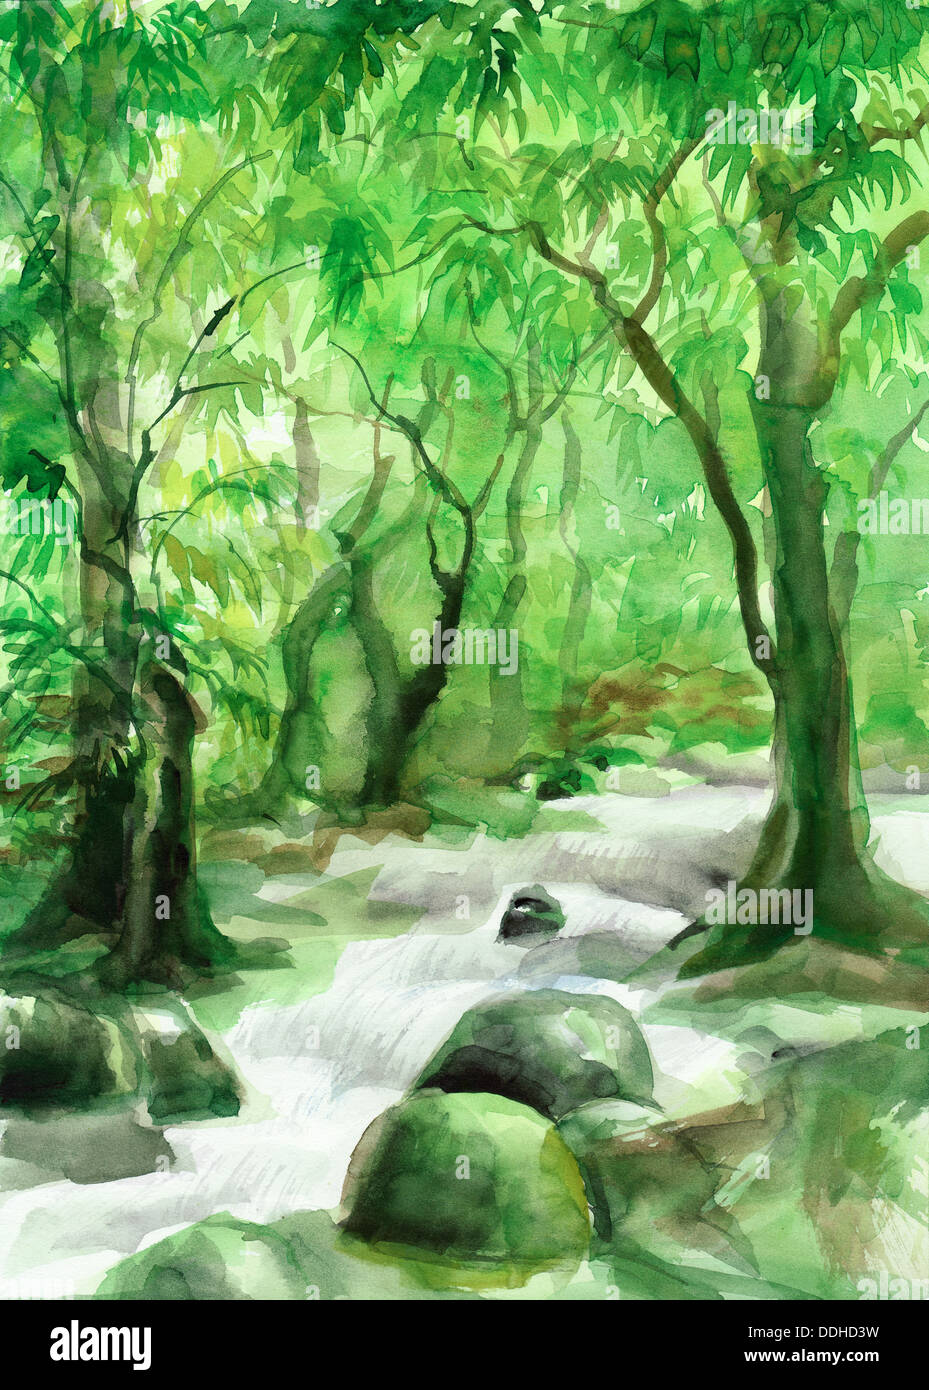 watercolor painting of green forest with a creek by veronika stock photo alamy https www alamy com watercolor painting of green forest with a creek by veronika surovtseva image60005117 html